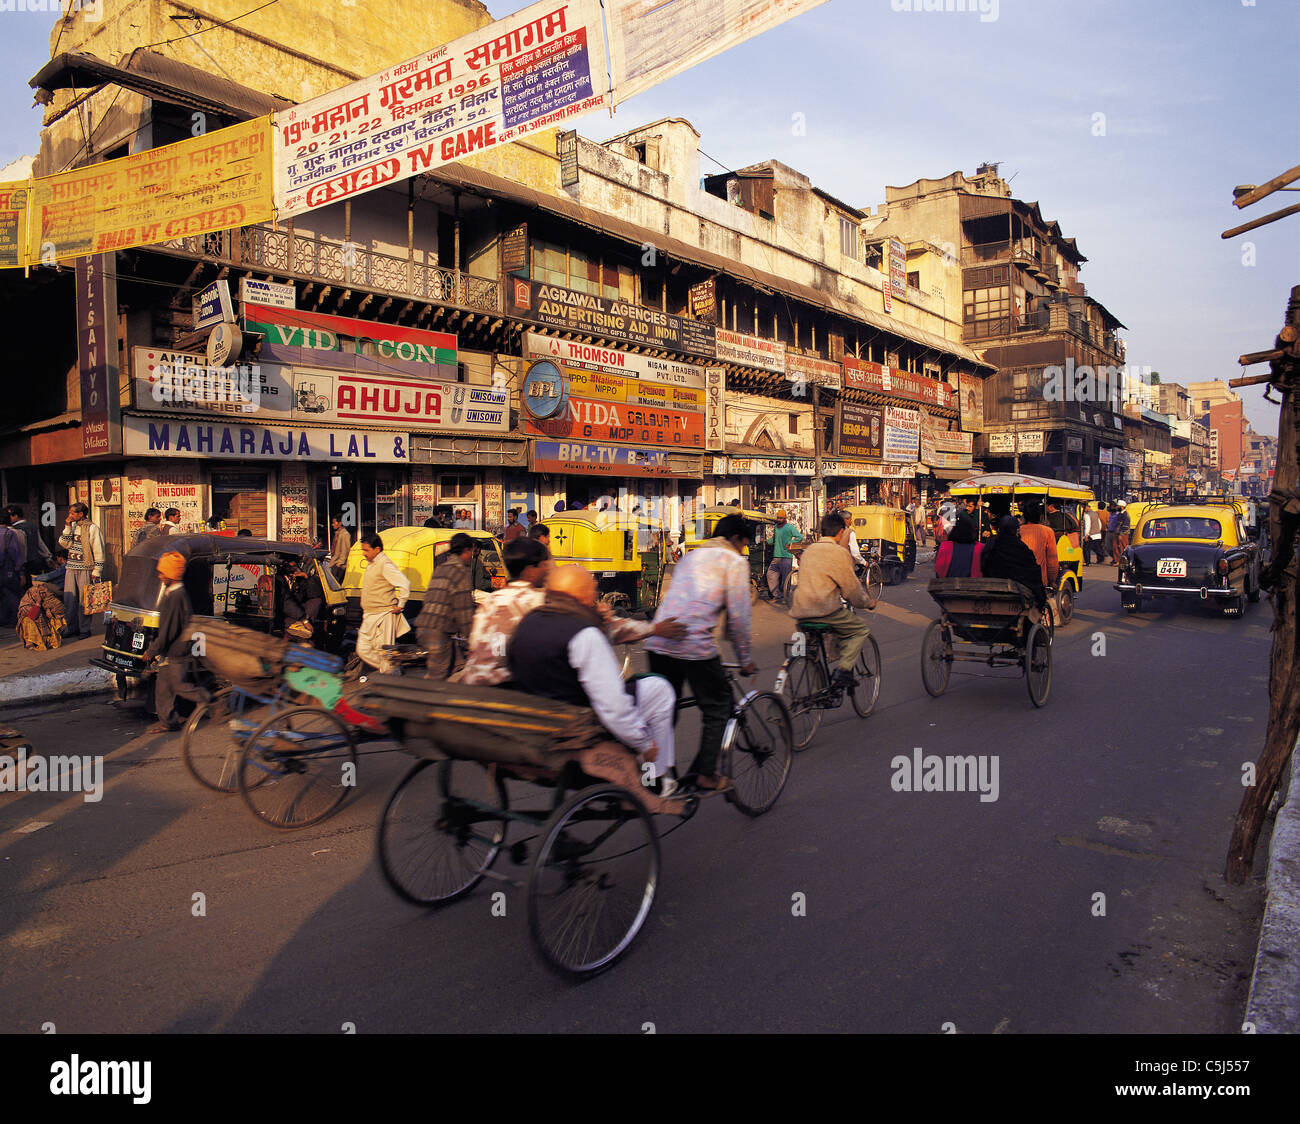 Busy traffic and passers-by in Chandini Chowk market area, central Delhi, India - Stock Image